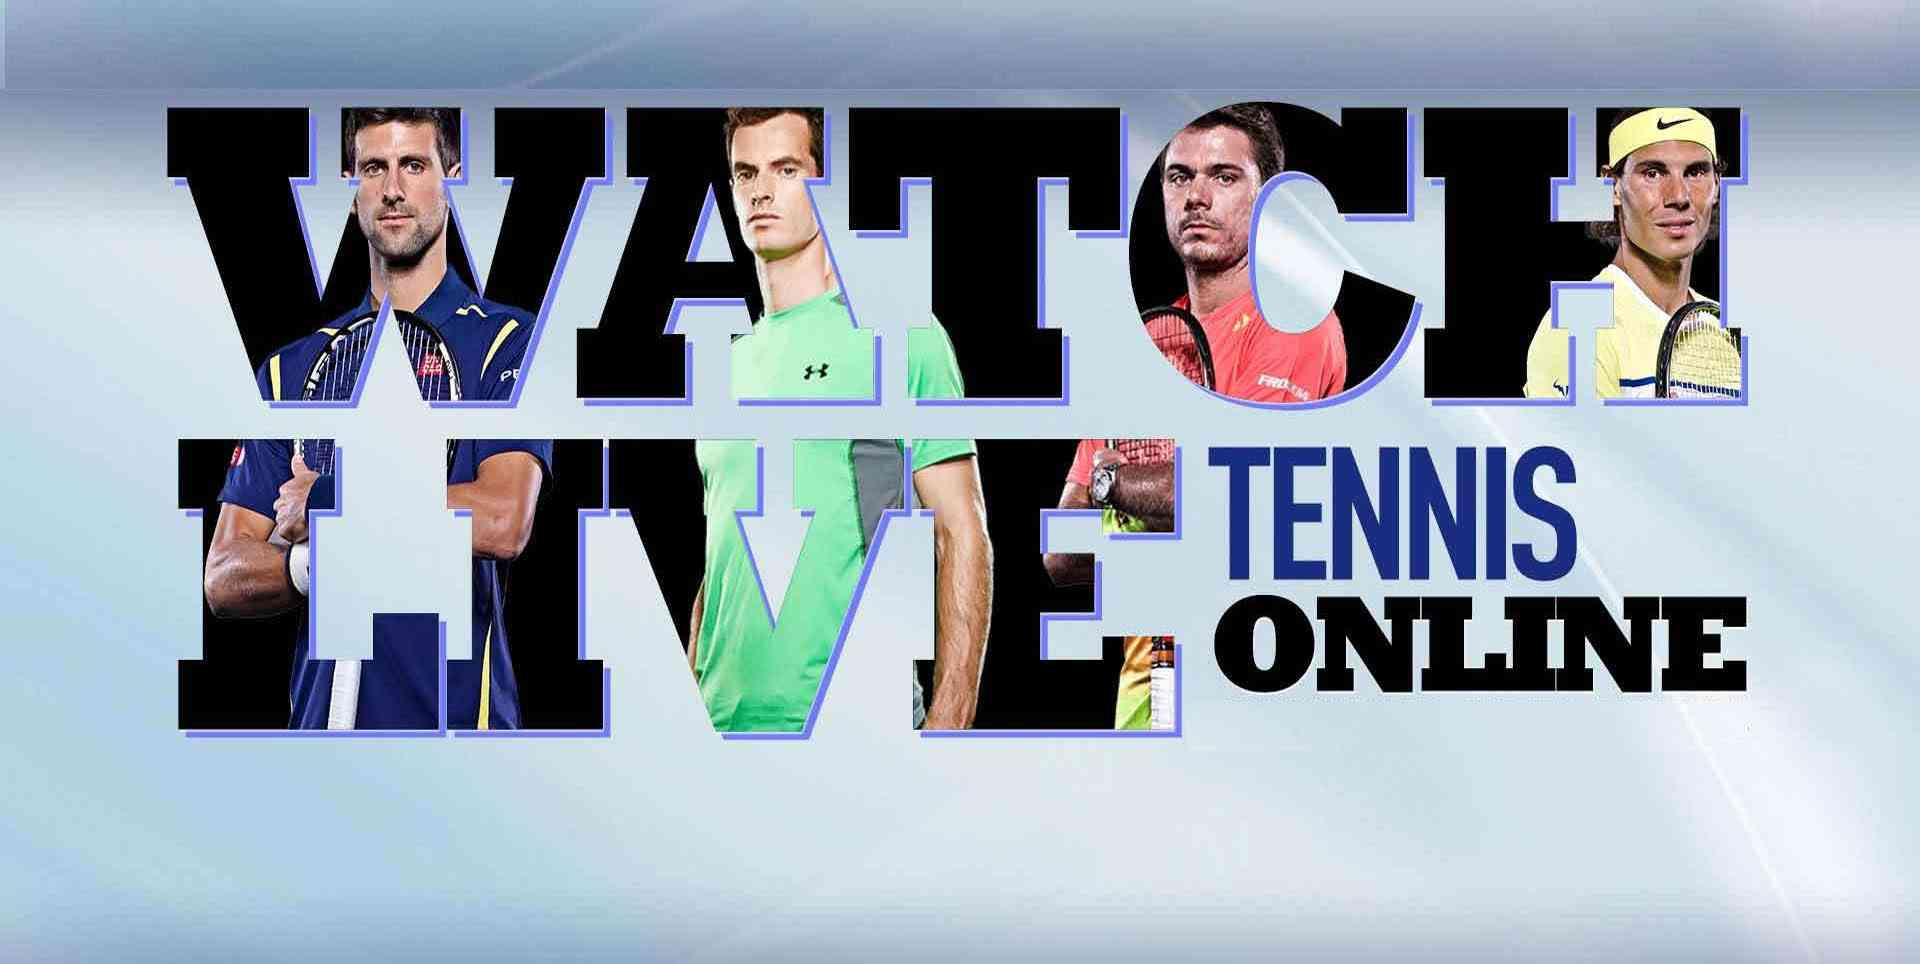 Watch R. Federer and F. Lopez Semifinals Live